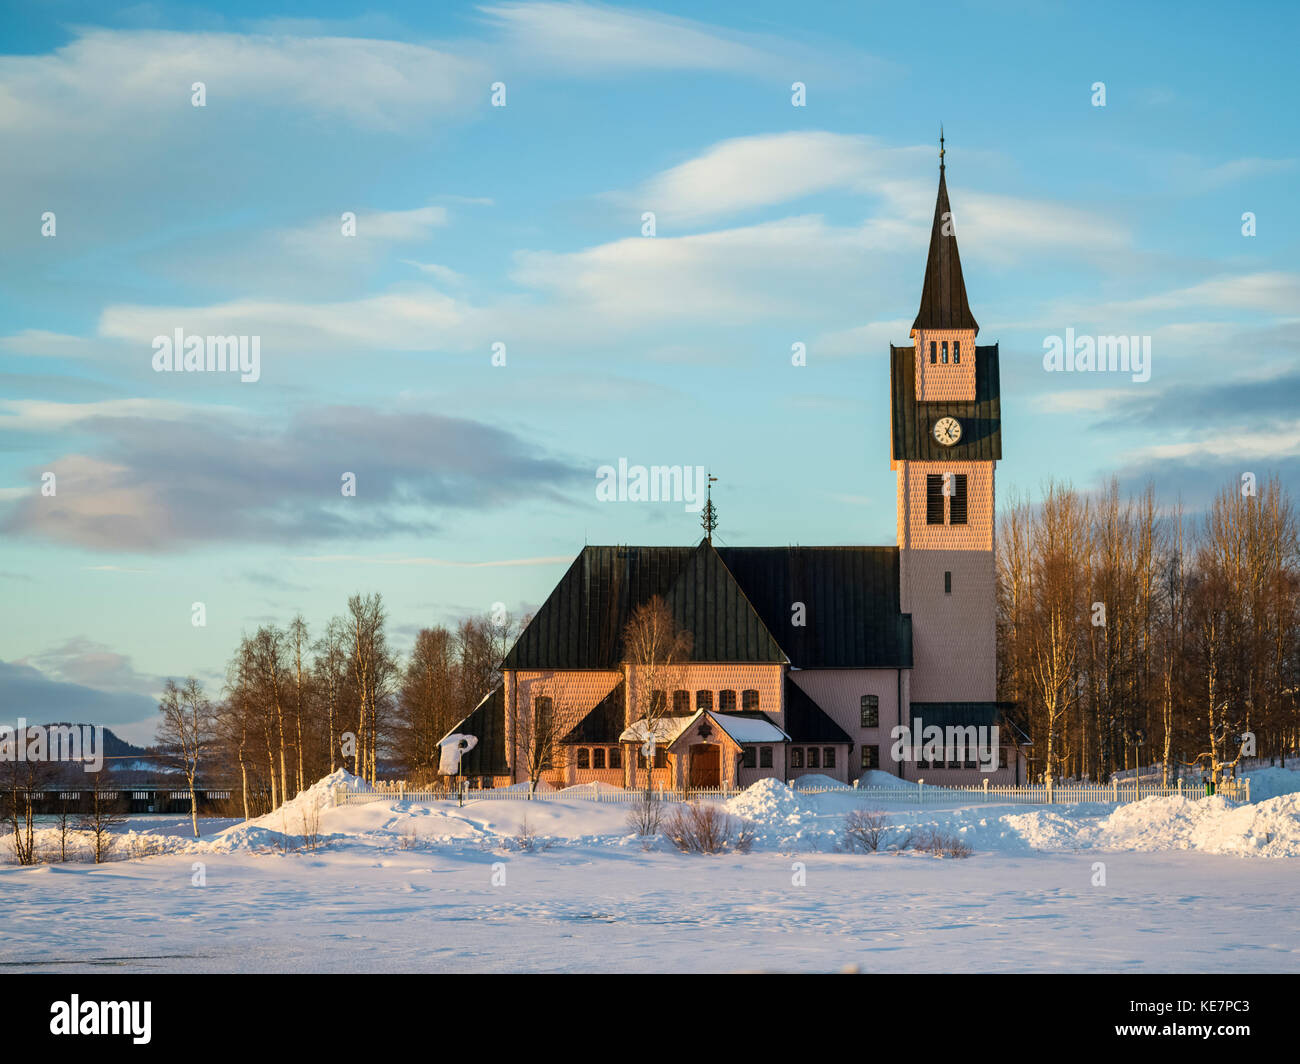 Arjeplog Church, The Pretty Pink Church; Arjeplog, Norrbotten County, Sweden - Stock Image